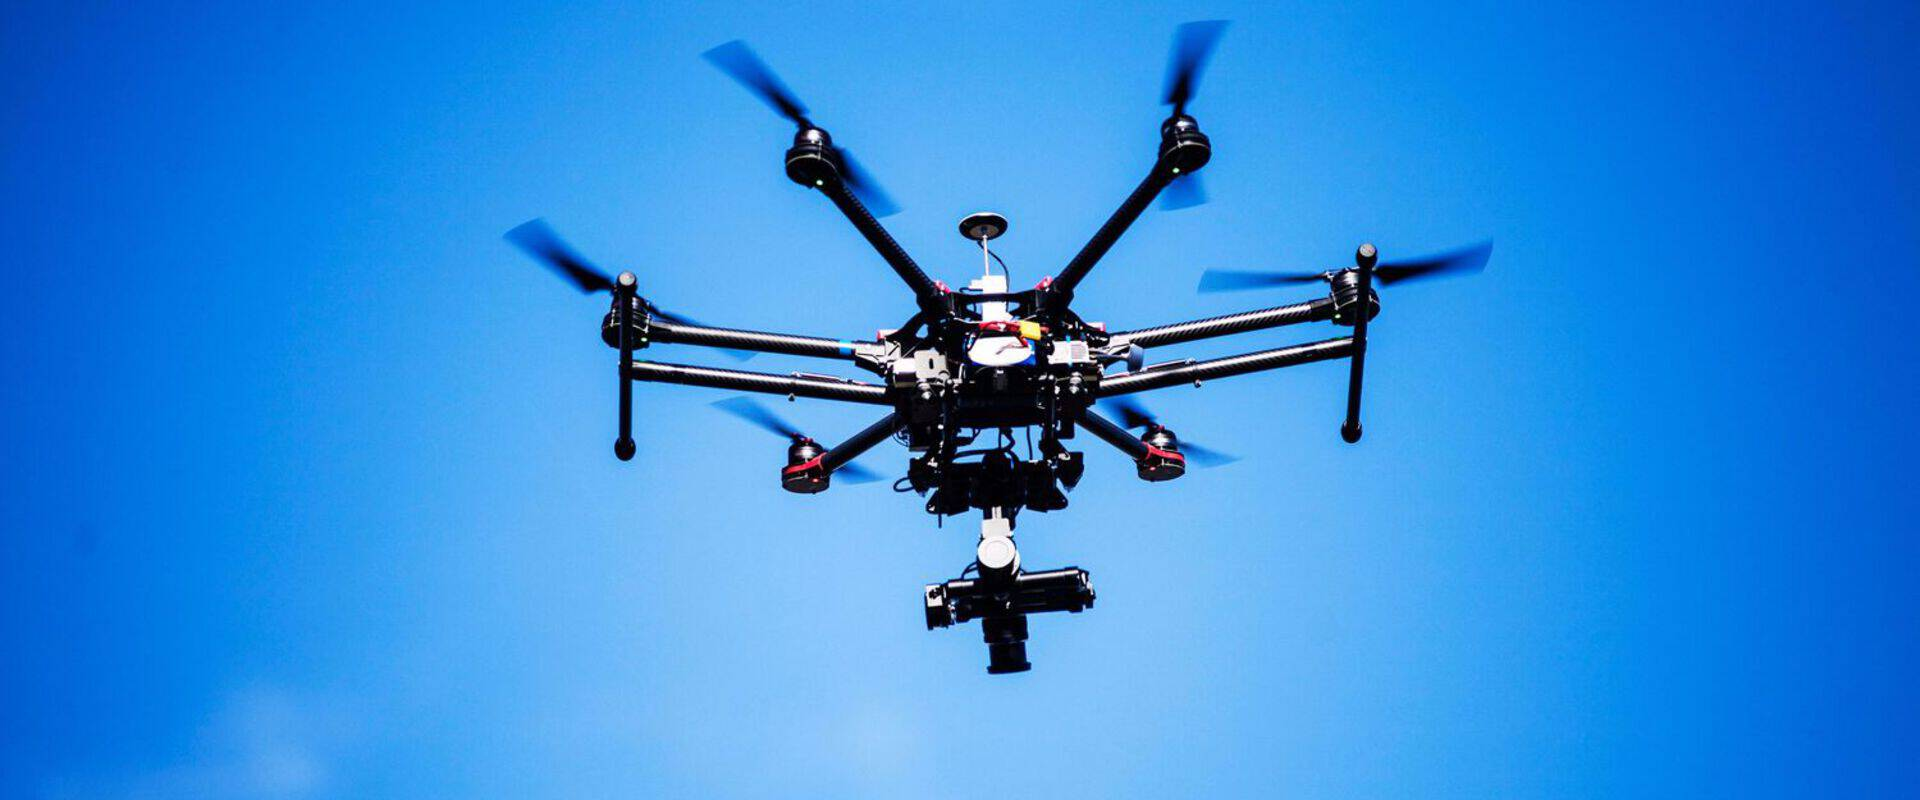 Man Shoots Down Drone for Invading His Privacy - The Judge is OK with It